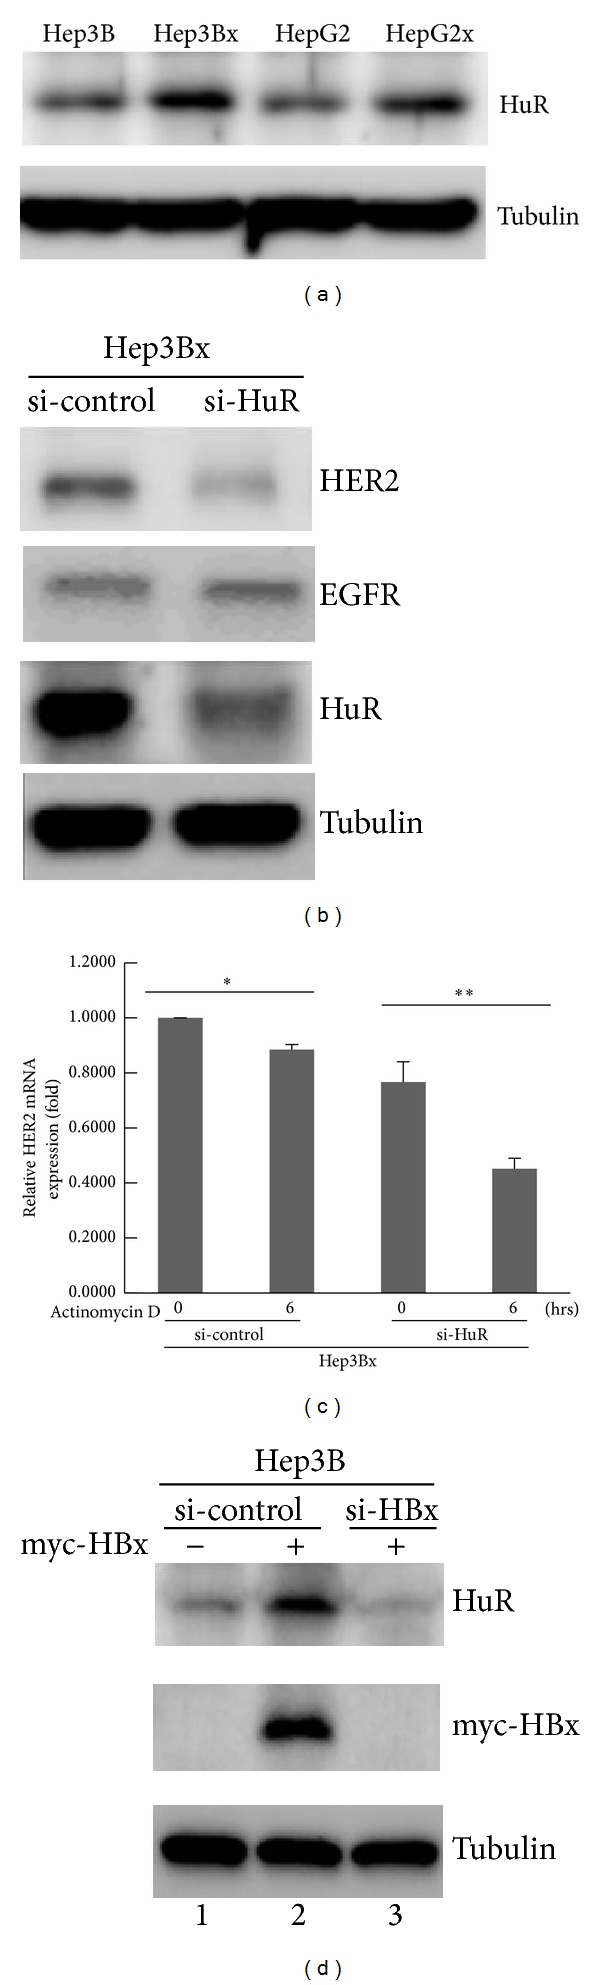 HBx increased <t>HER2</t> protein expression by HuR-dependent mRNA stabilization in HCC cells. (a) The HuR protein expression in HBx-paired HCC cells was examined by Western blot ( N = 4). (b) Hep3Bx cells were transiently transfected with either si-control or si-HuR for 4 days. The protein expressions of HER2, EGFR, and HuR were analyzed by Western blot ( N = 3). (c) Hep3Bx cells were transiently transfected with either si-control or si-HuR for 4 days, followed by the treatment of 5 μ M Actinomycin D. The relative remaining HER2 mRNA expression in each group was determined by RT-qPCR. The HER2 mRNA expression was normalized to actin expression. Statistical analysis was performed by Student's t -test. * P